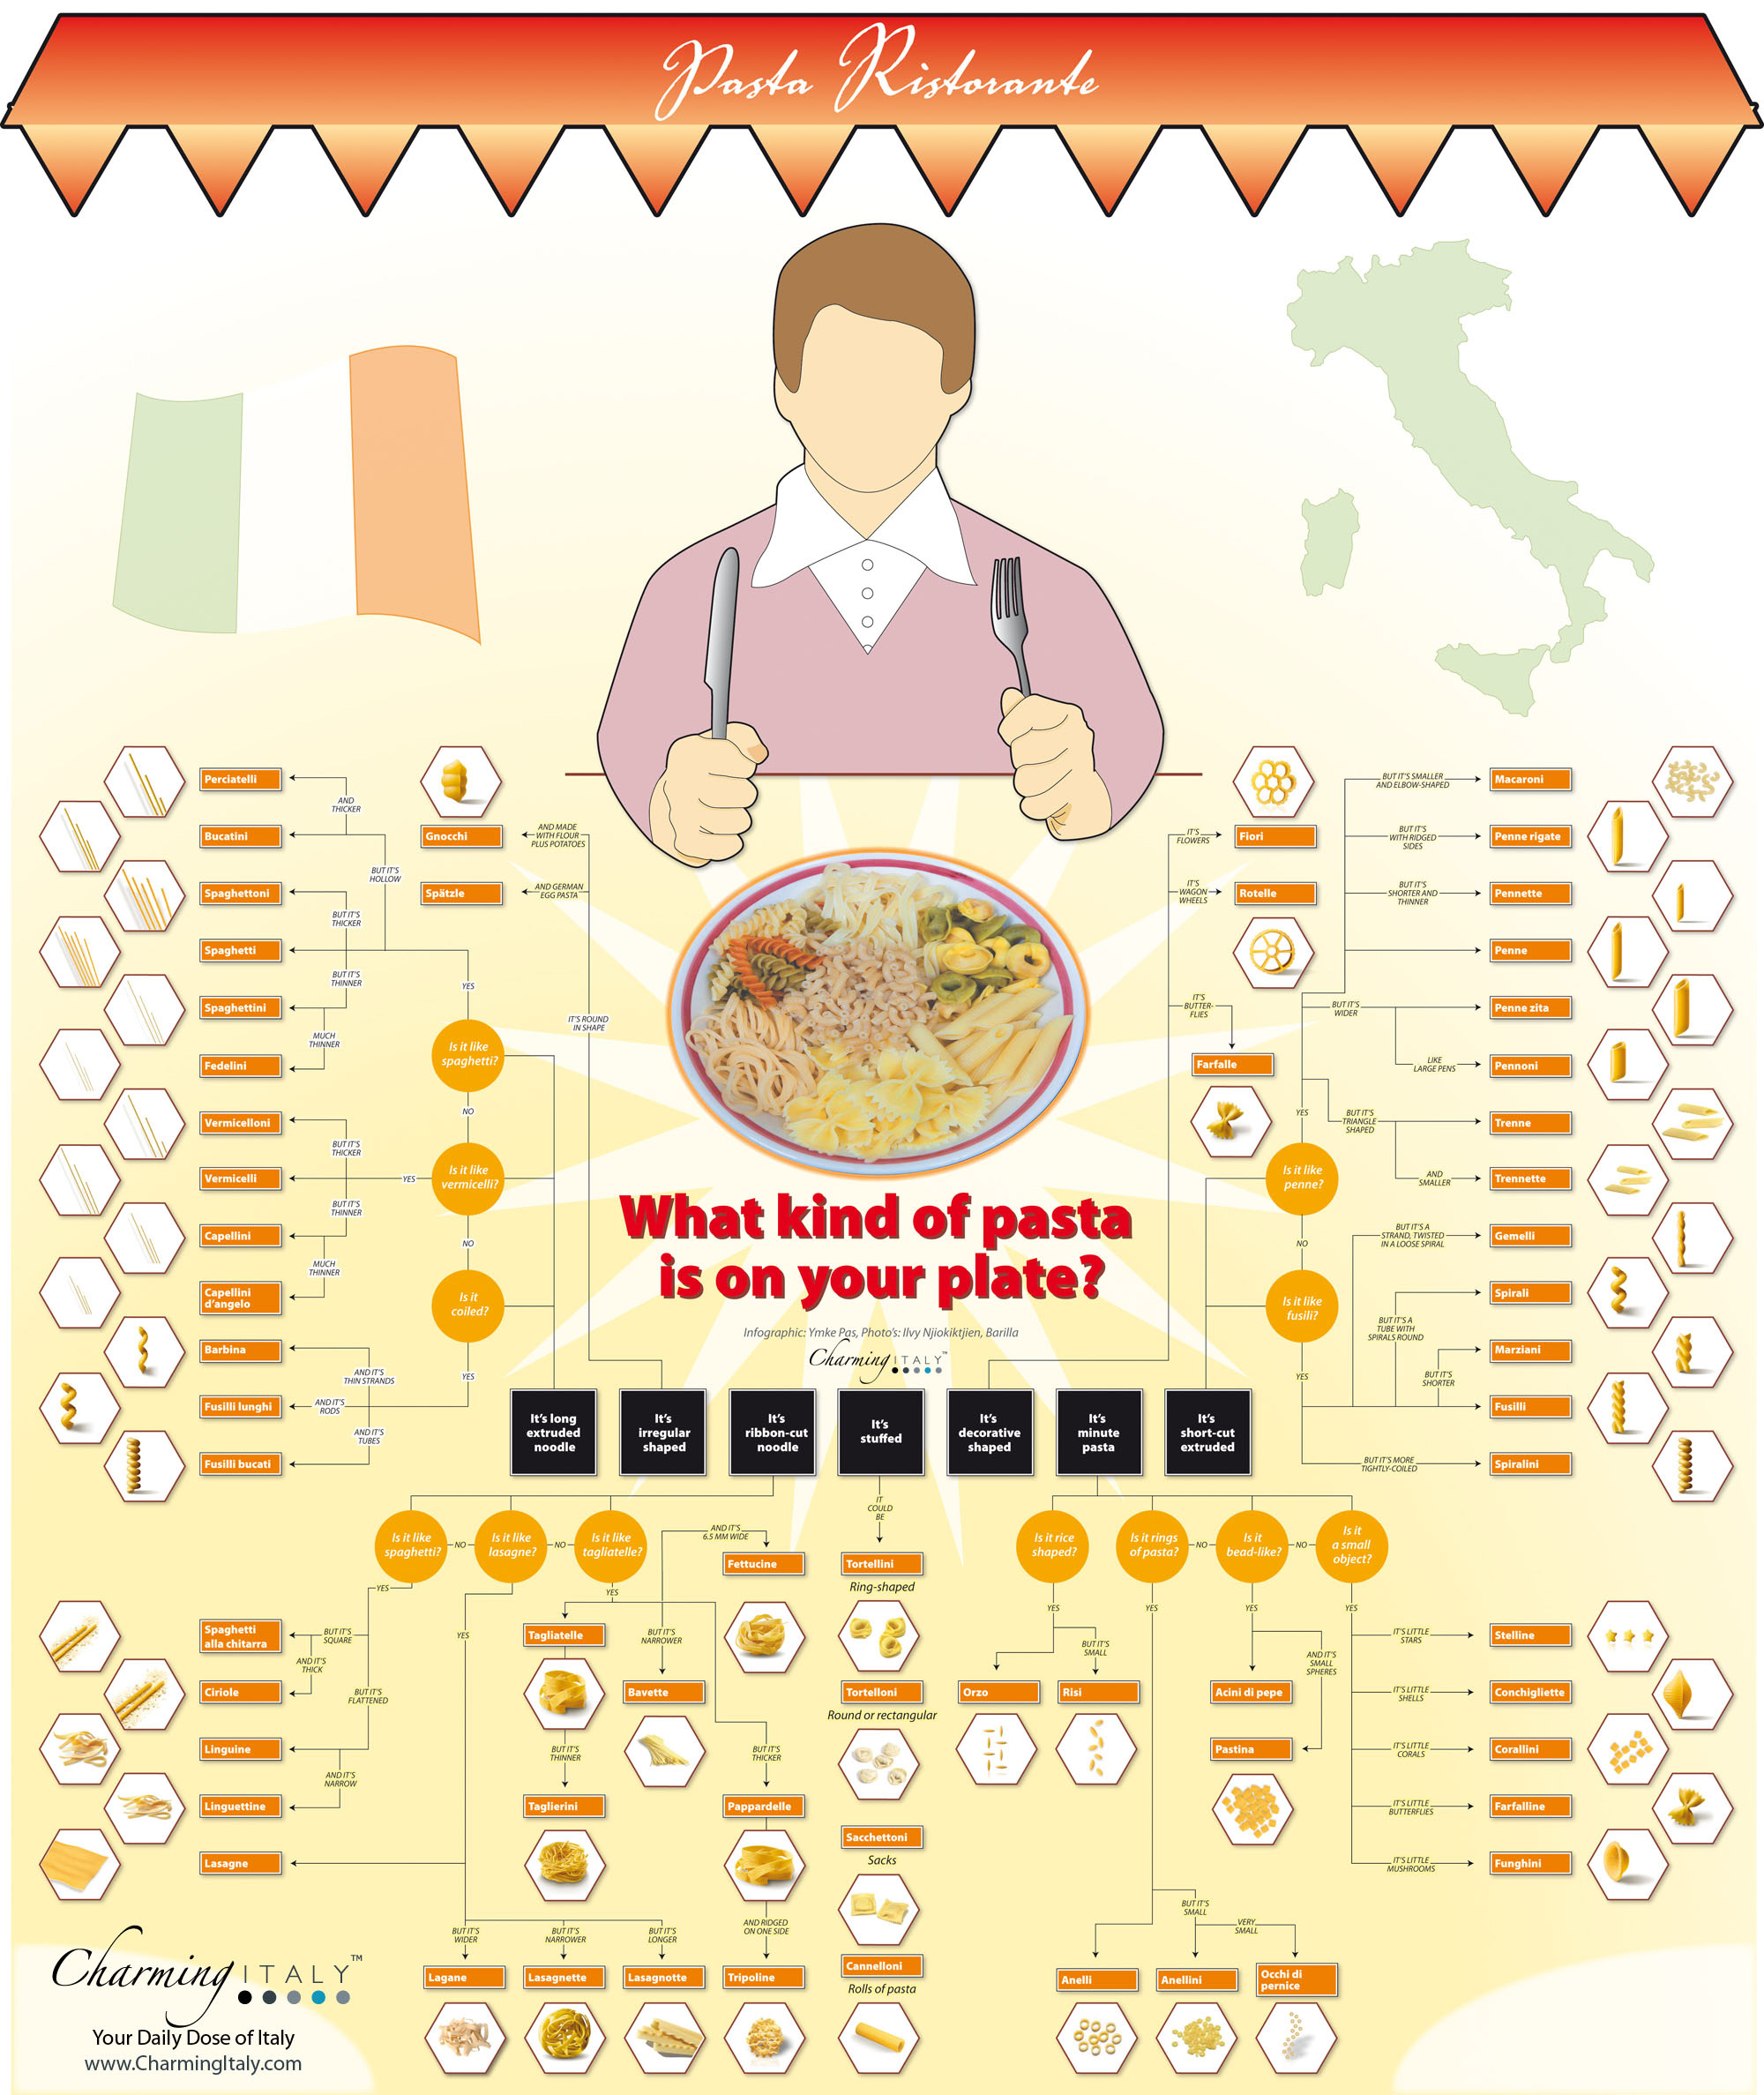 the different types of pasta what kind is on my plate